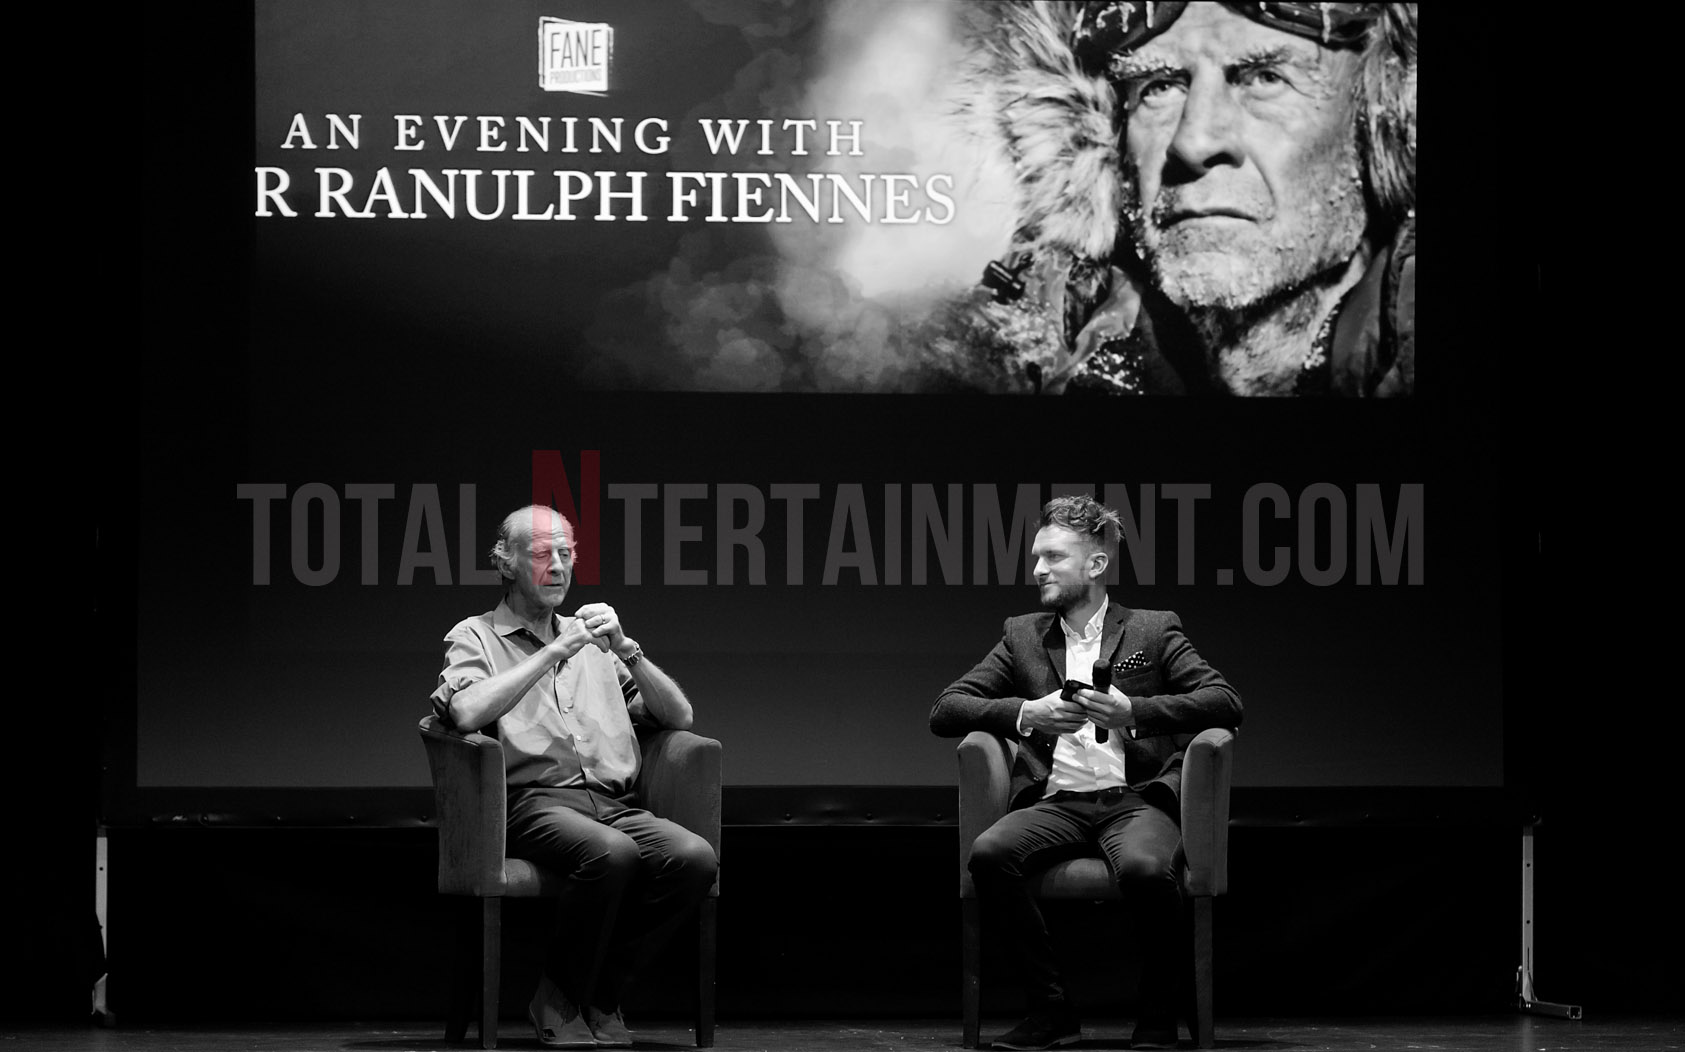 An intimate evening with Sir Ranulph Fiennes at York Grand